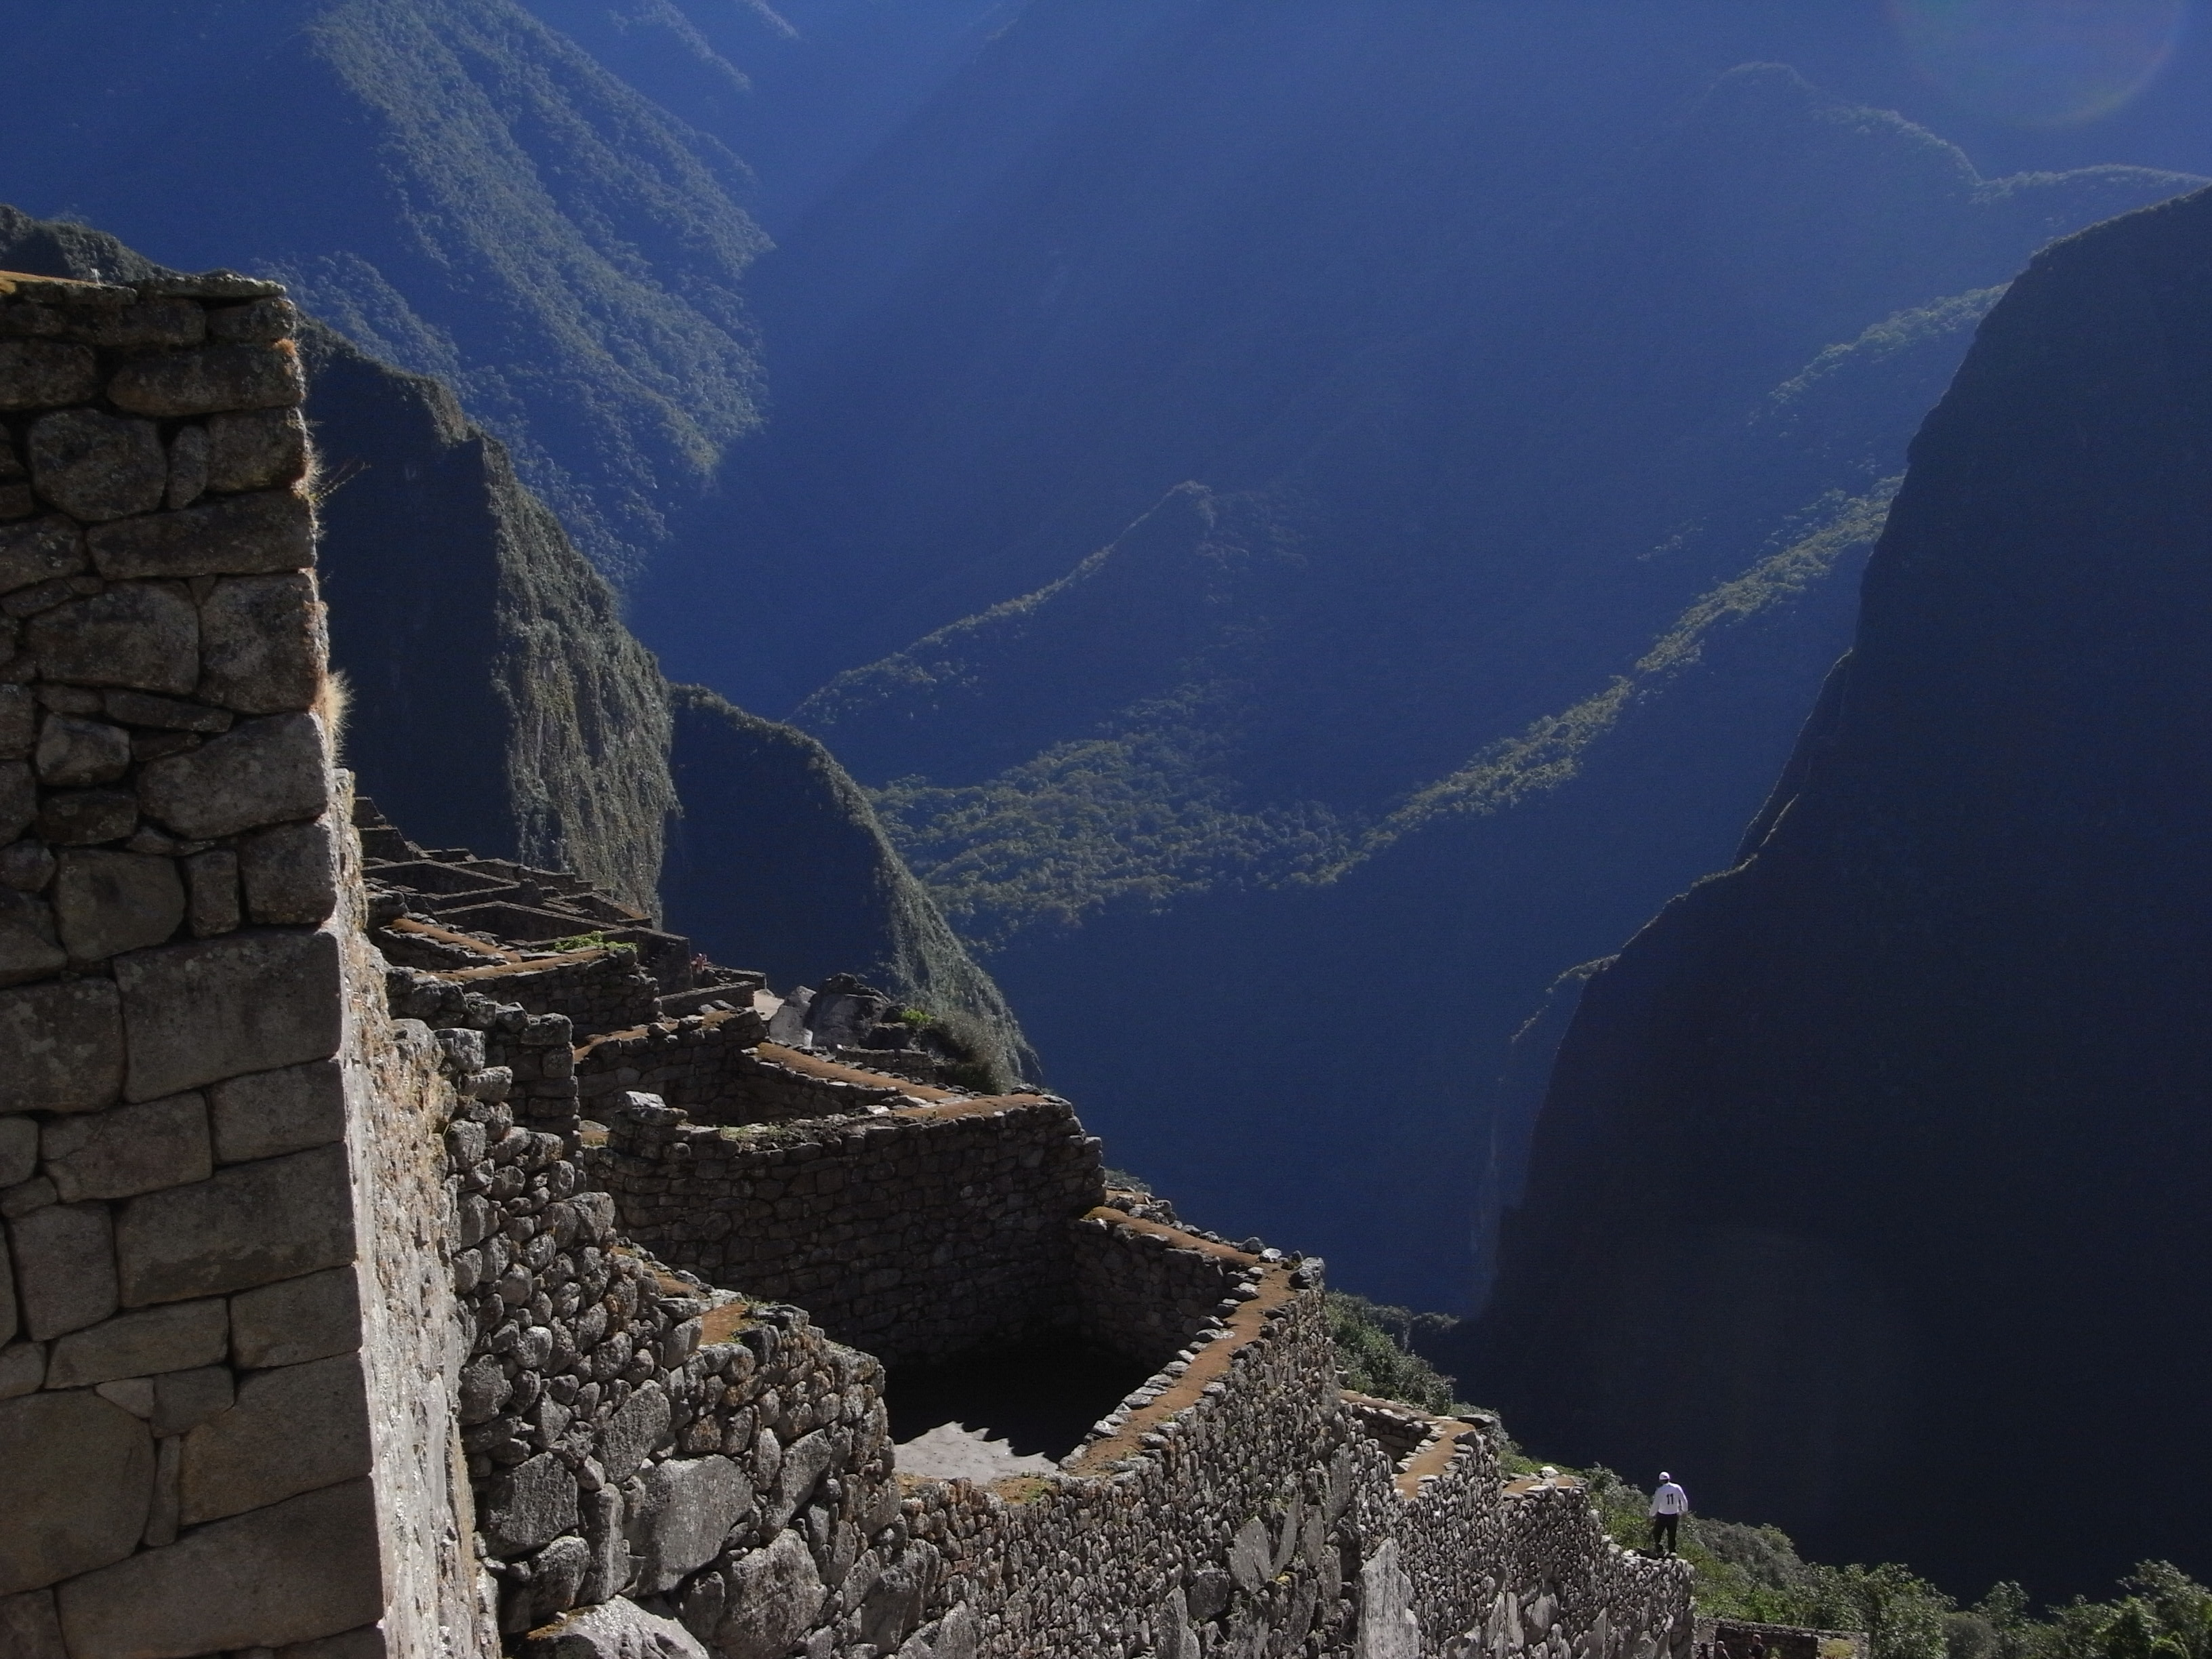 The Inca's certainly like heights!